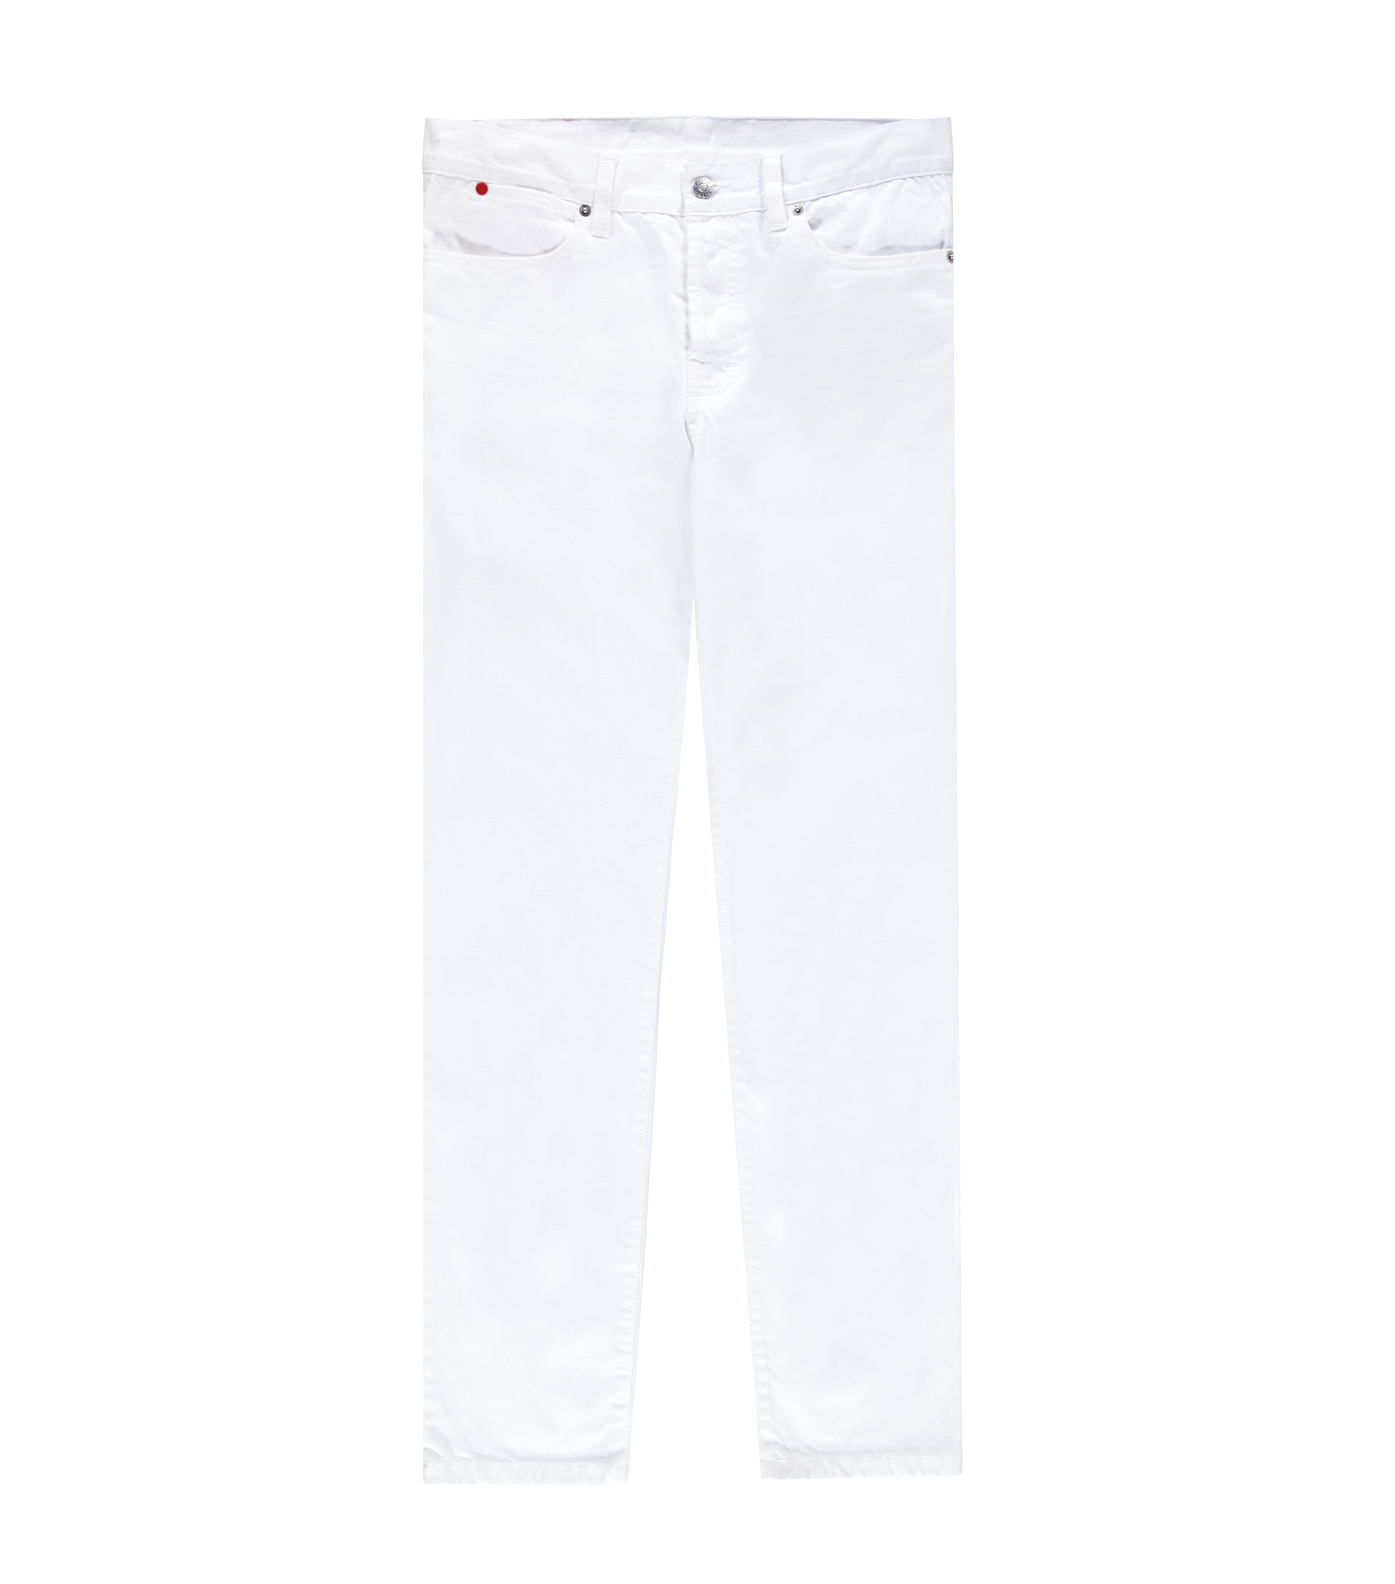 Pants GN.Denim - White denim